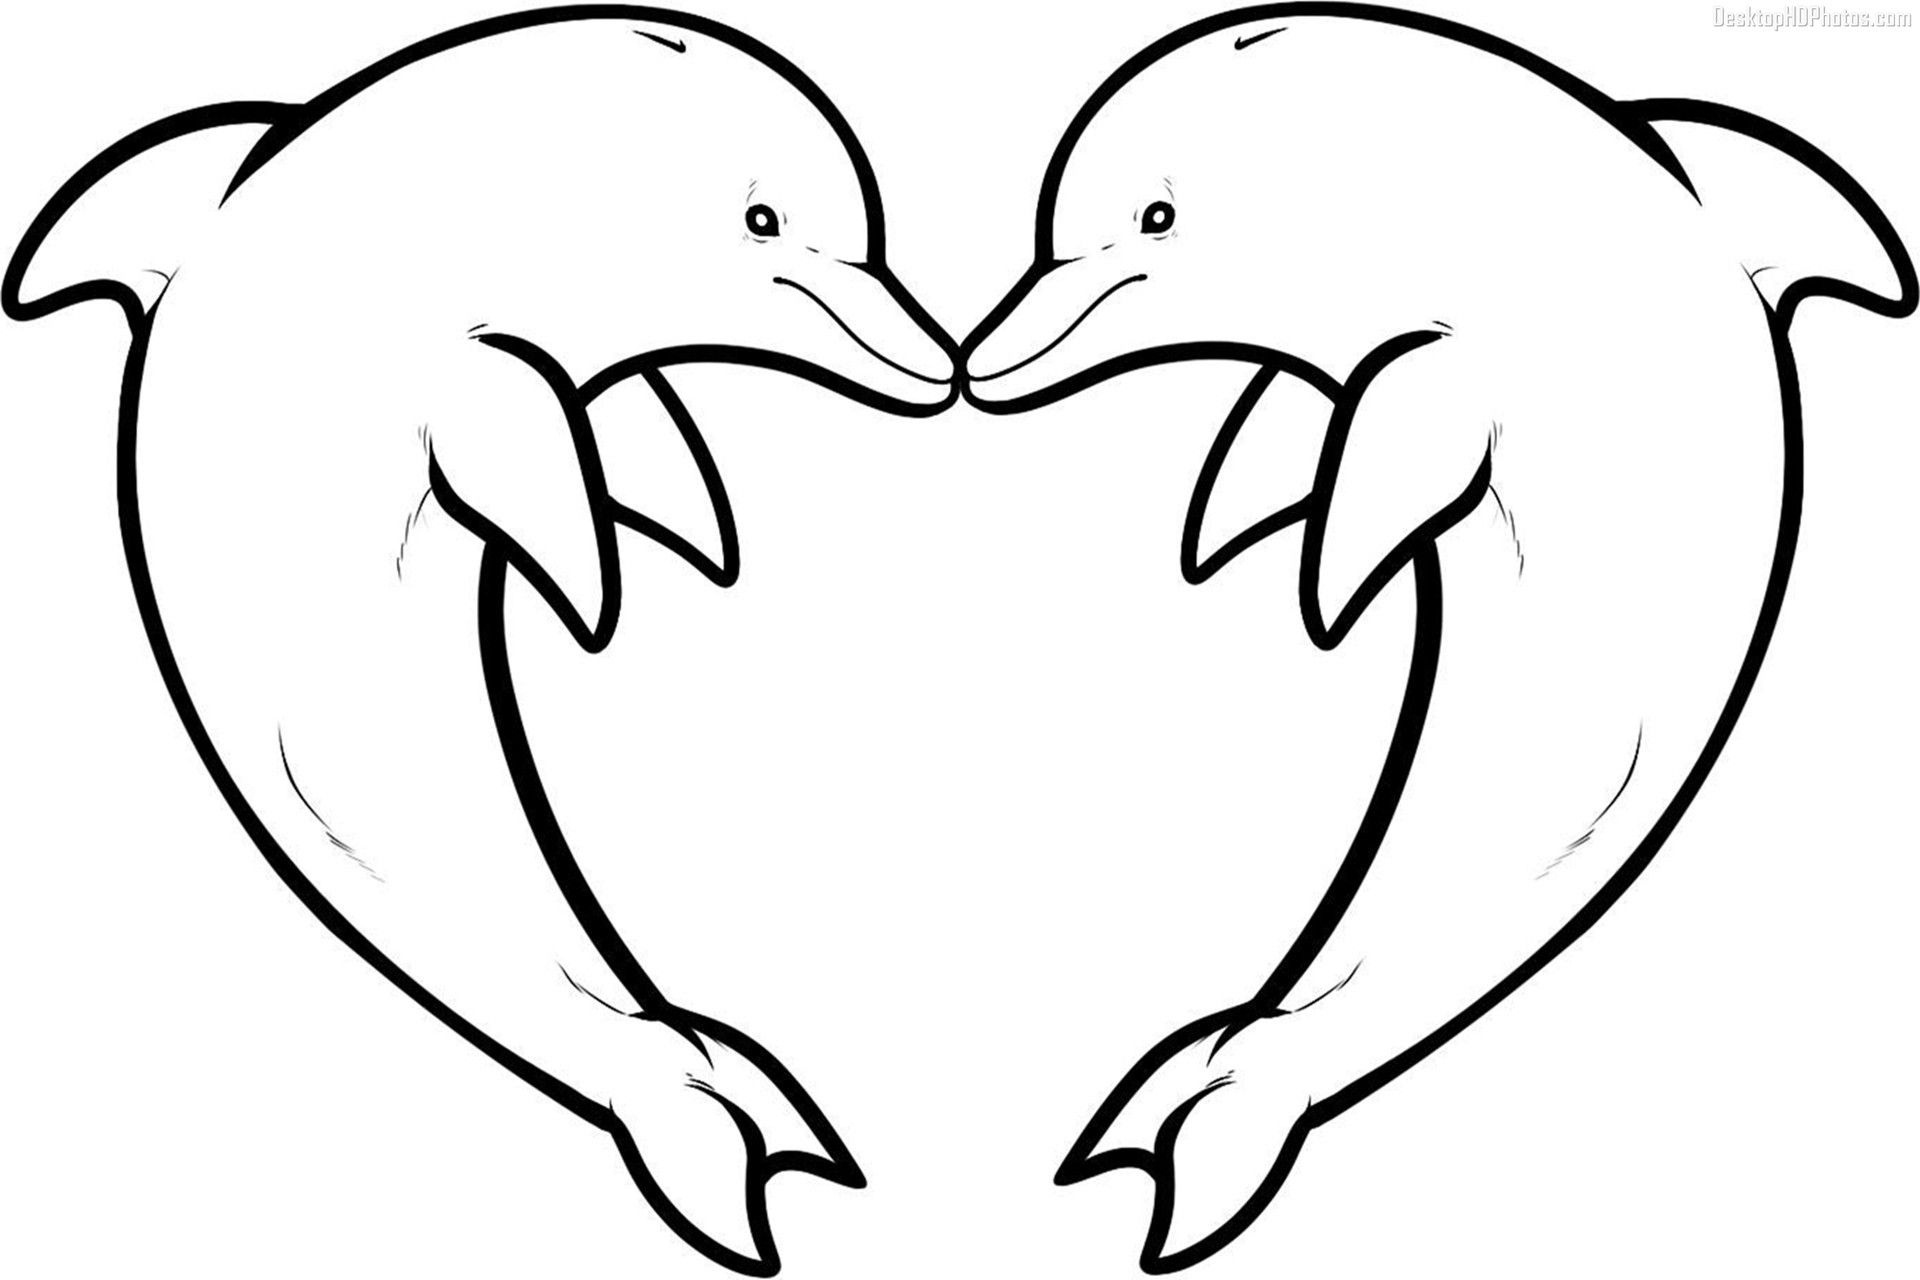 Dolphin Coloring Pages Download And Print For Free | Inspiration - Dolphin Coloring Sheets Free Printable